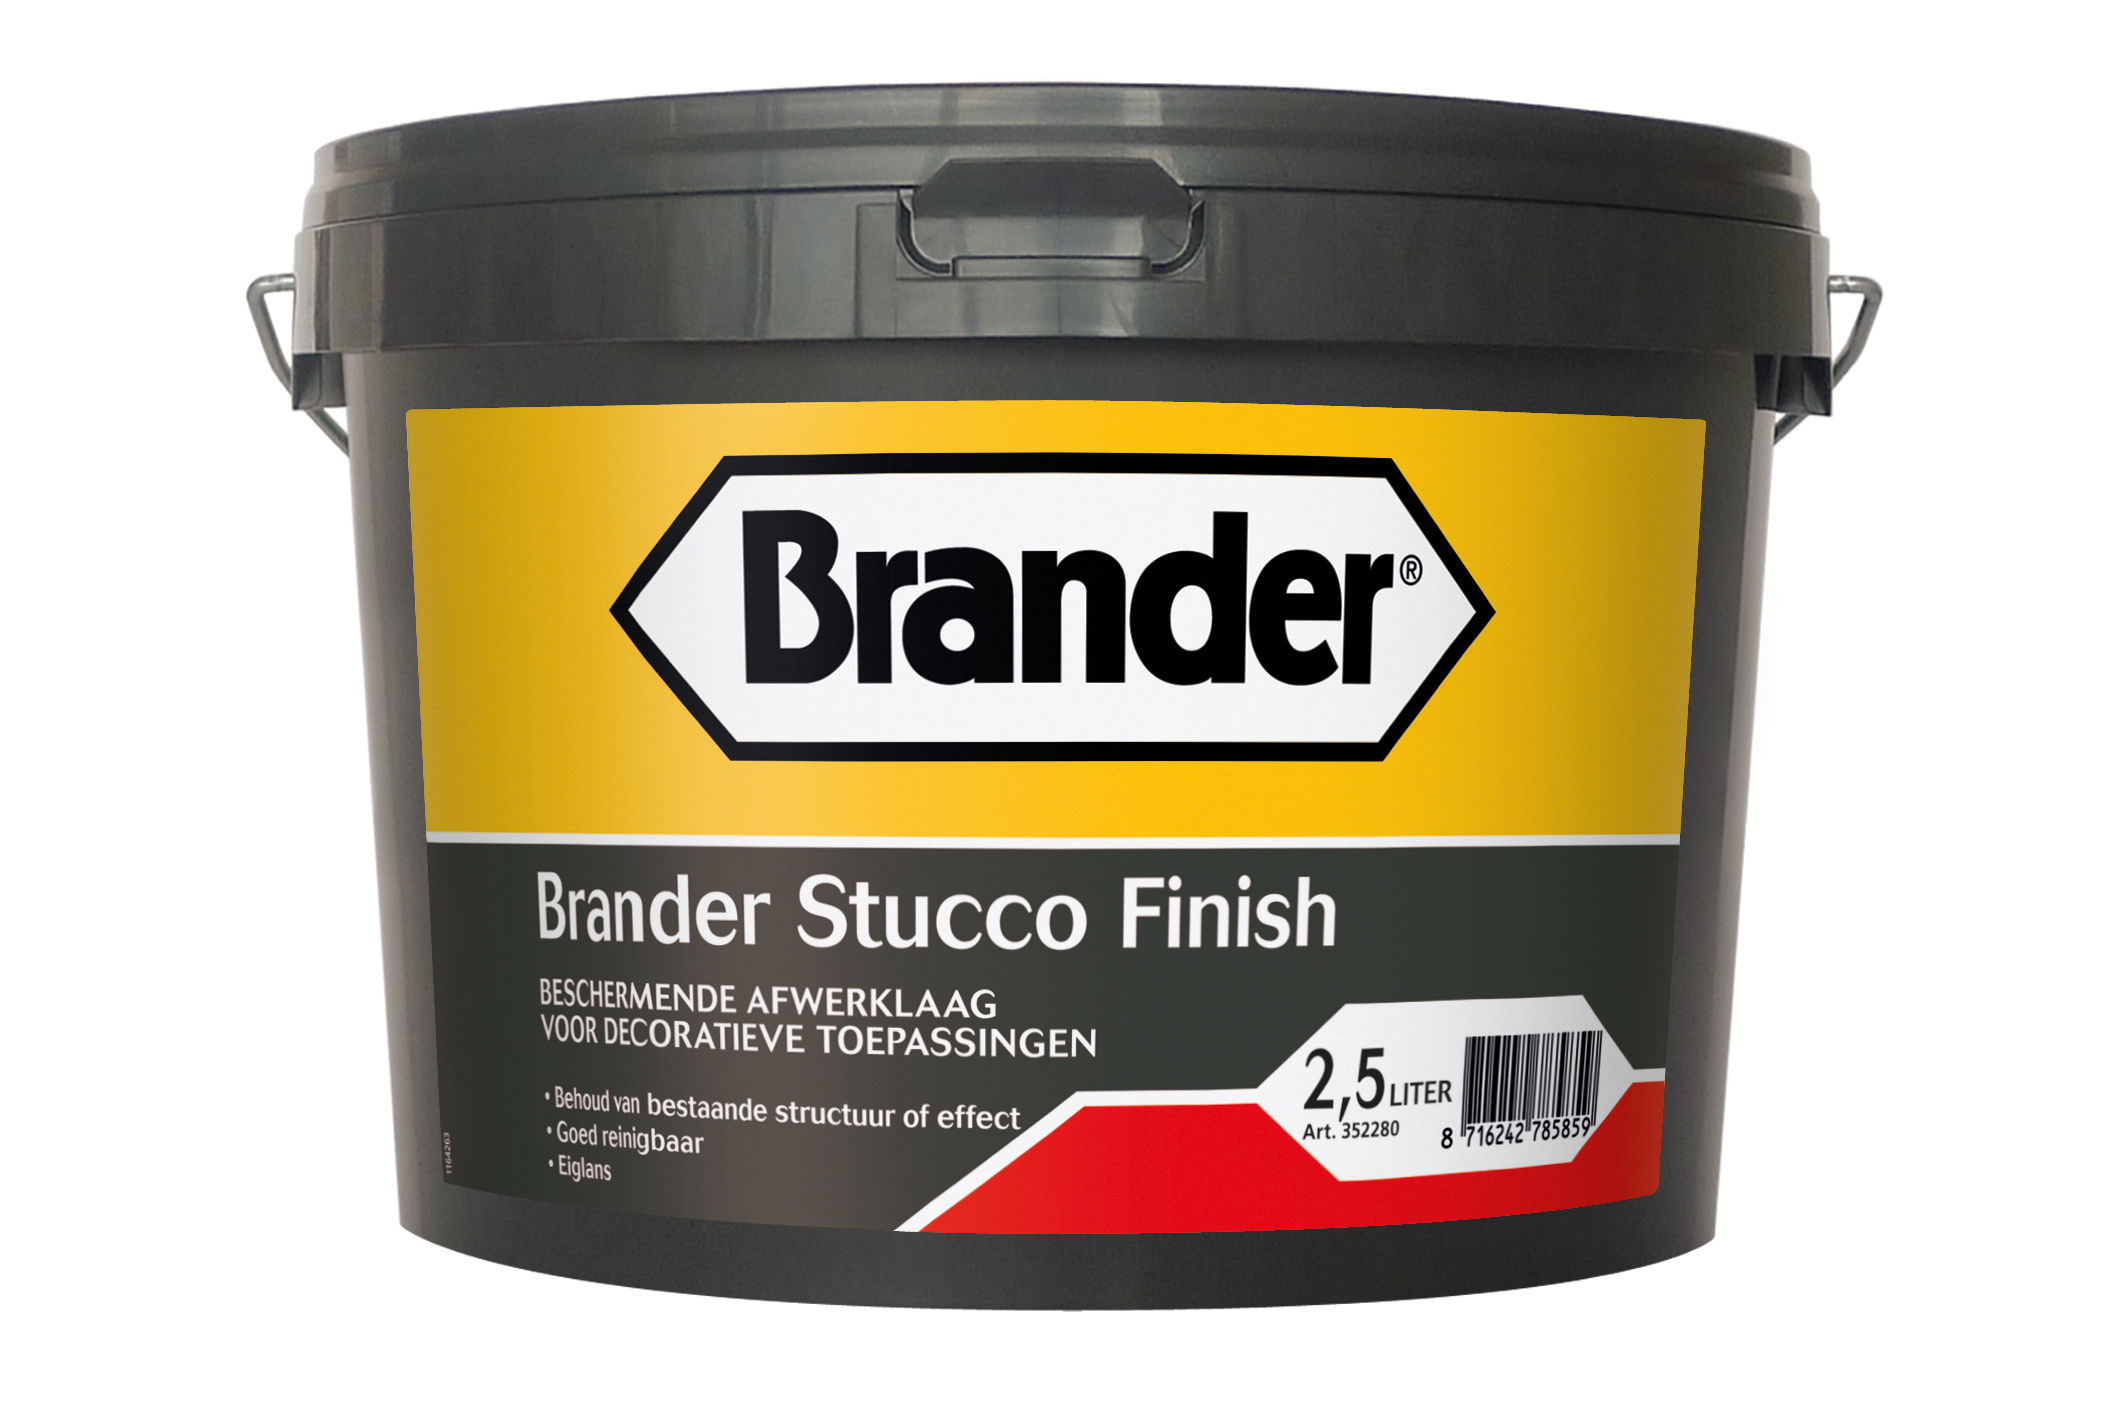 Brander Stucco Finish